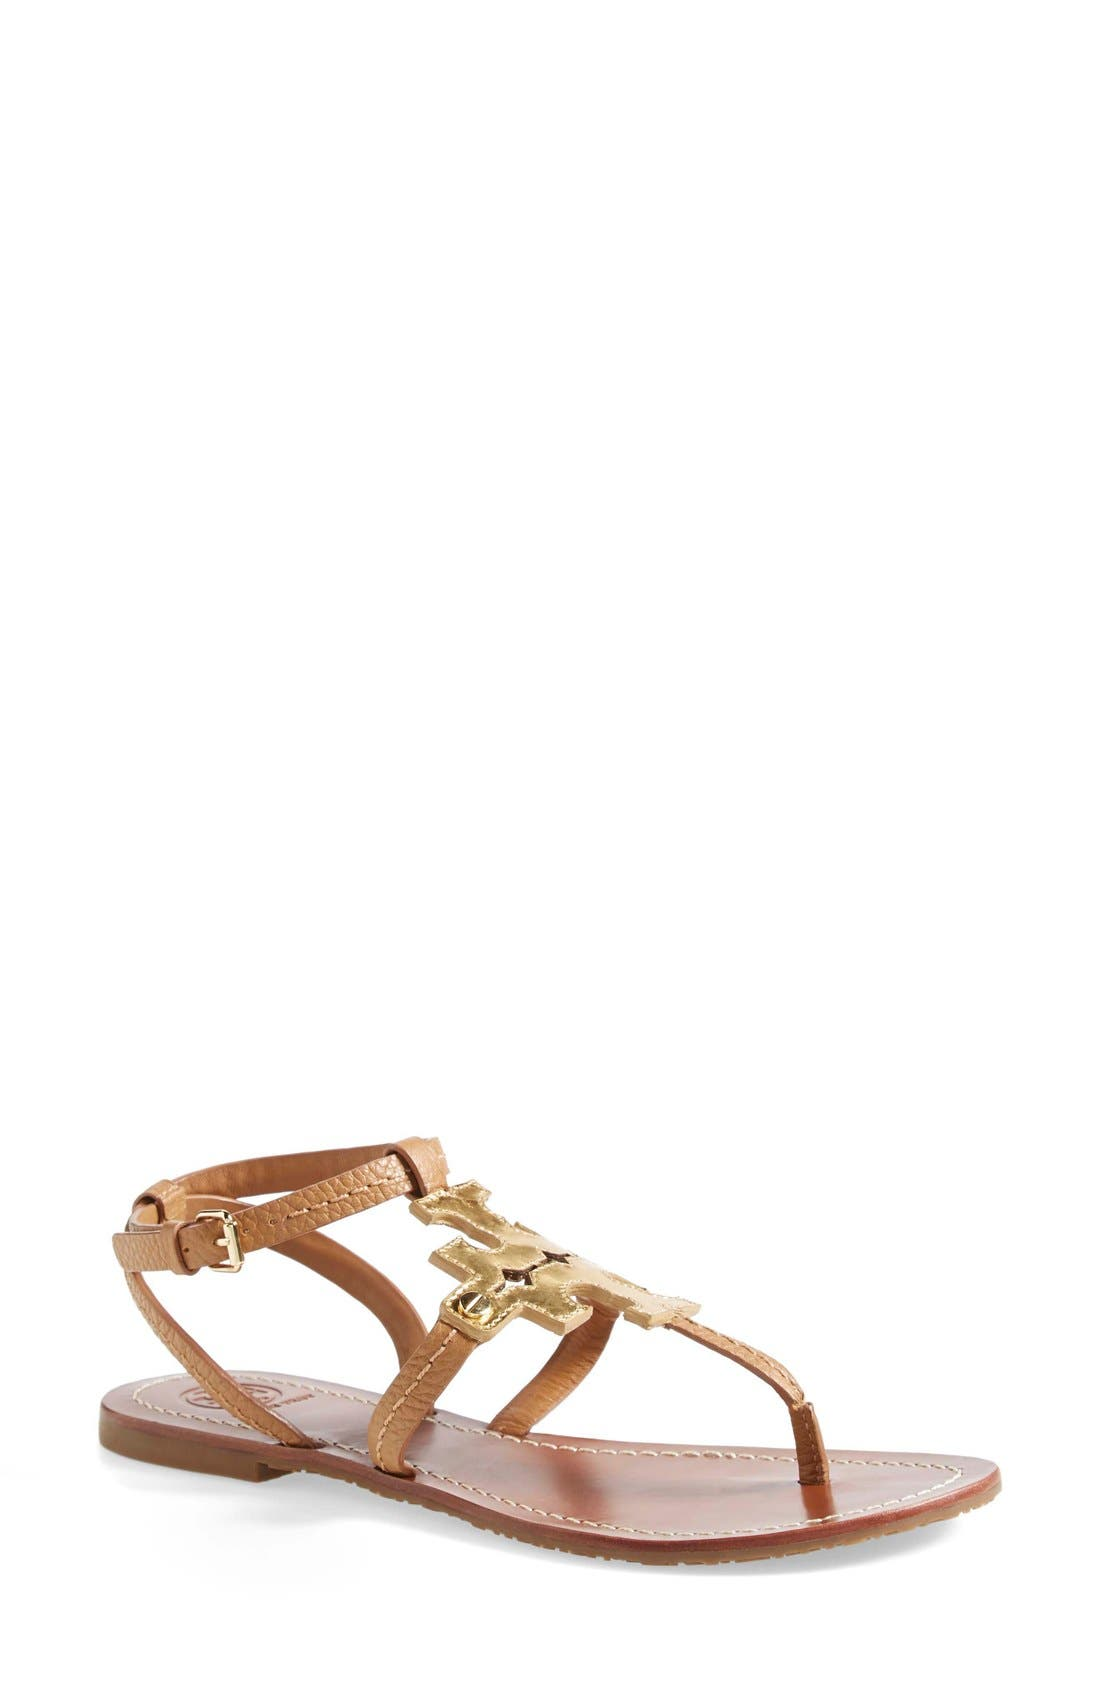 Alternate Image 1 Selected - Tory Burch 'Chandler' Leather Sandal (Women)